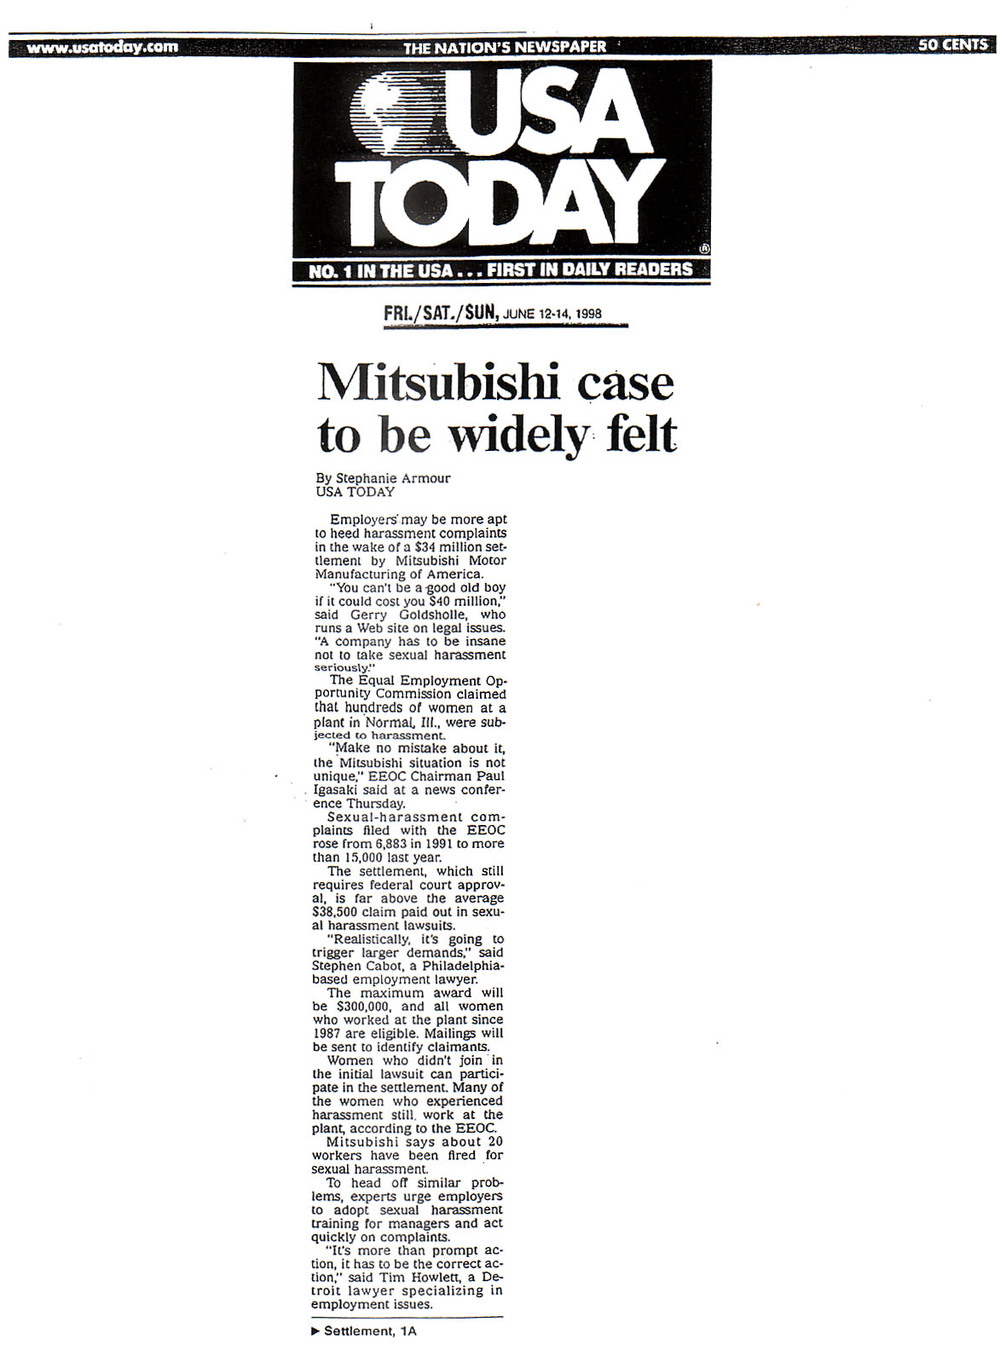 usa today-june 12-14, 1998-mitsubishi case to be widely felt page 1.jpg